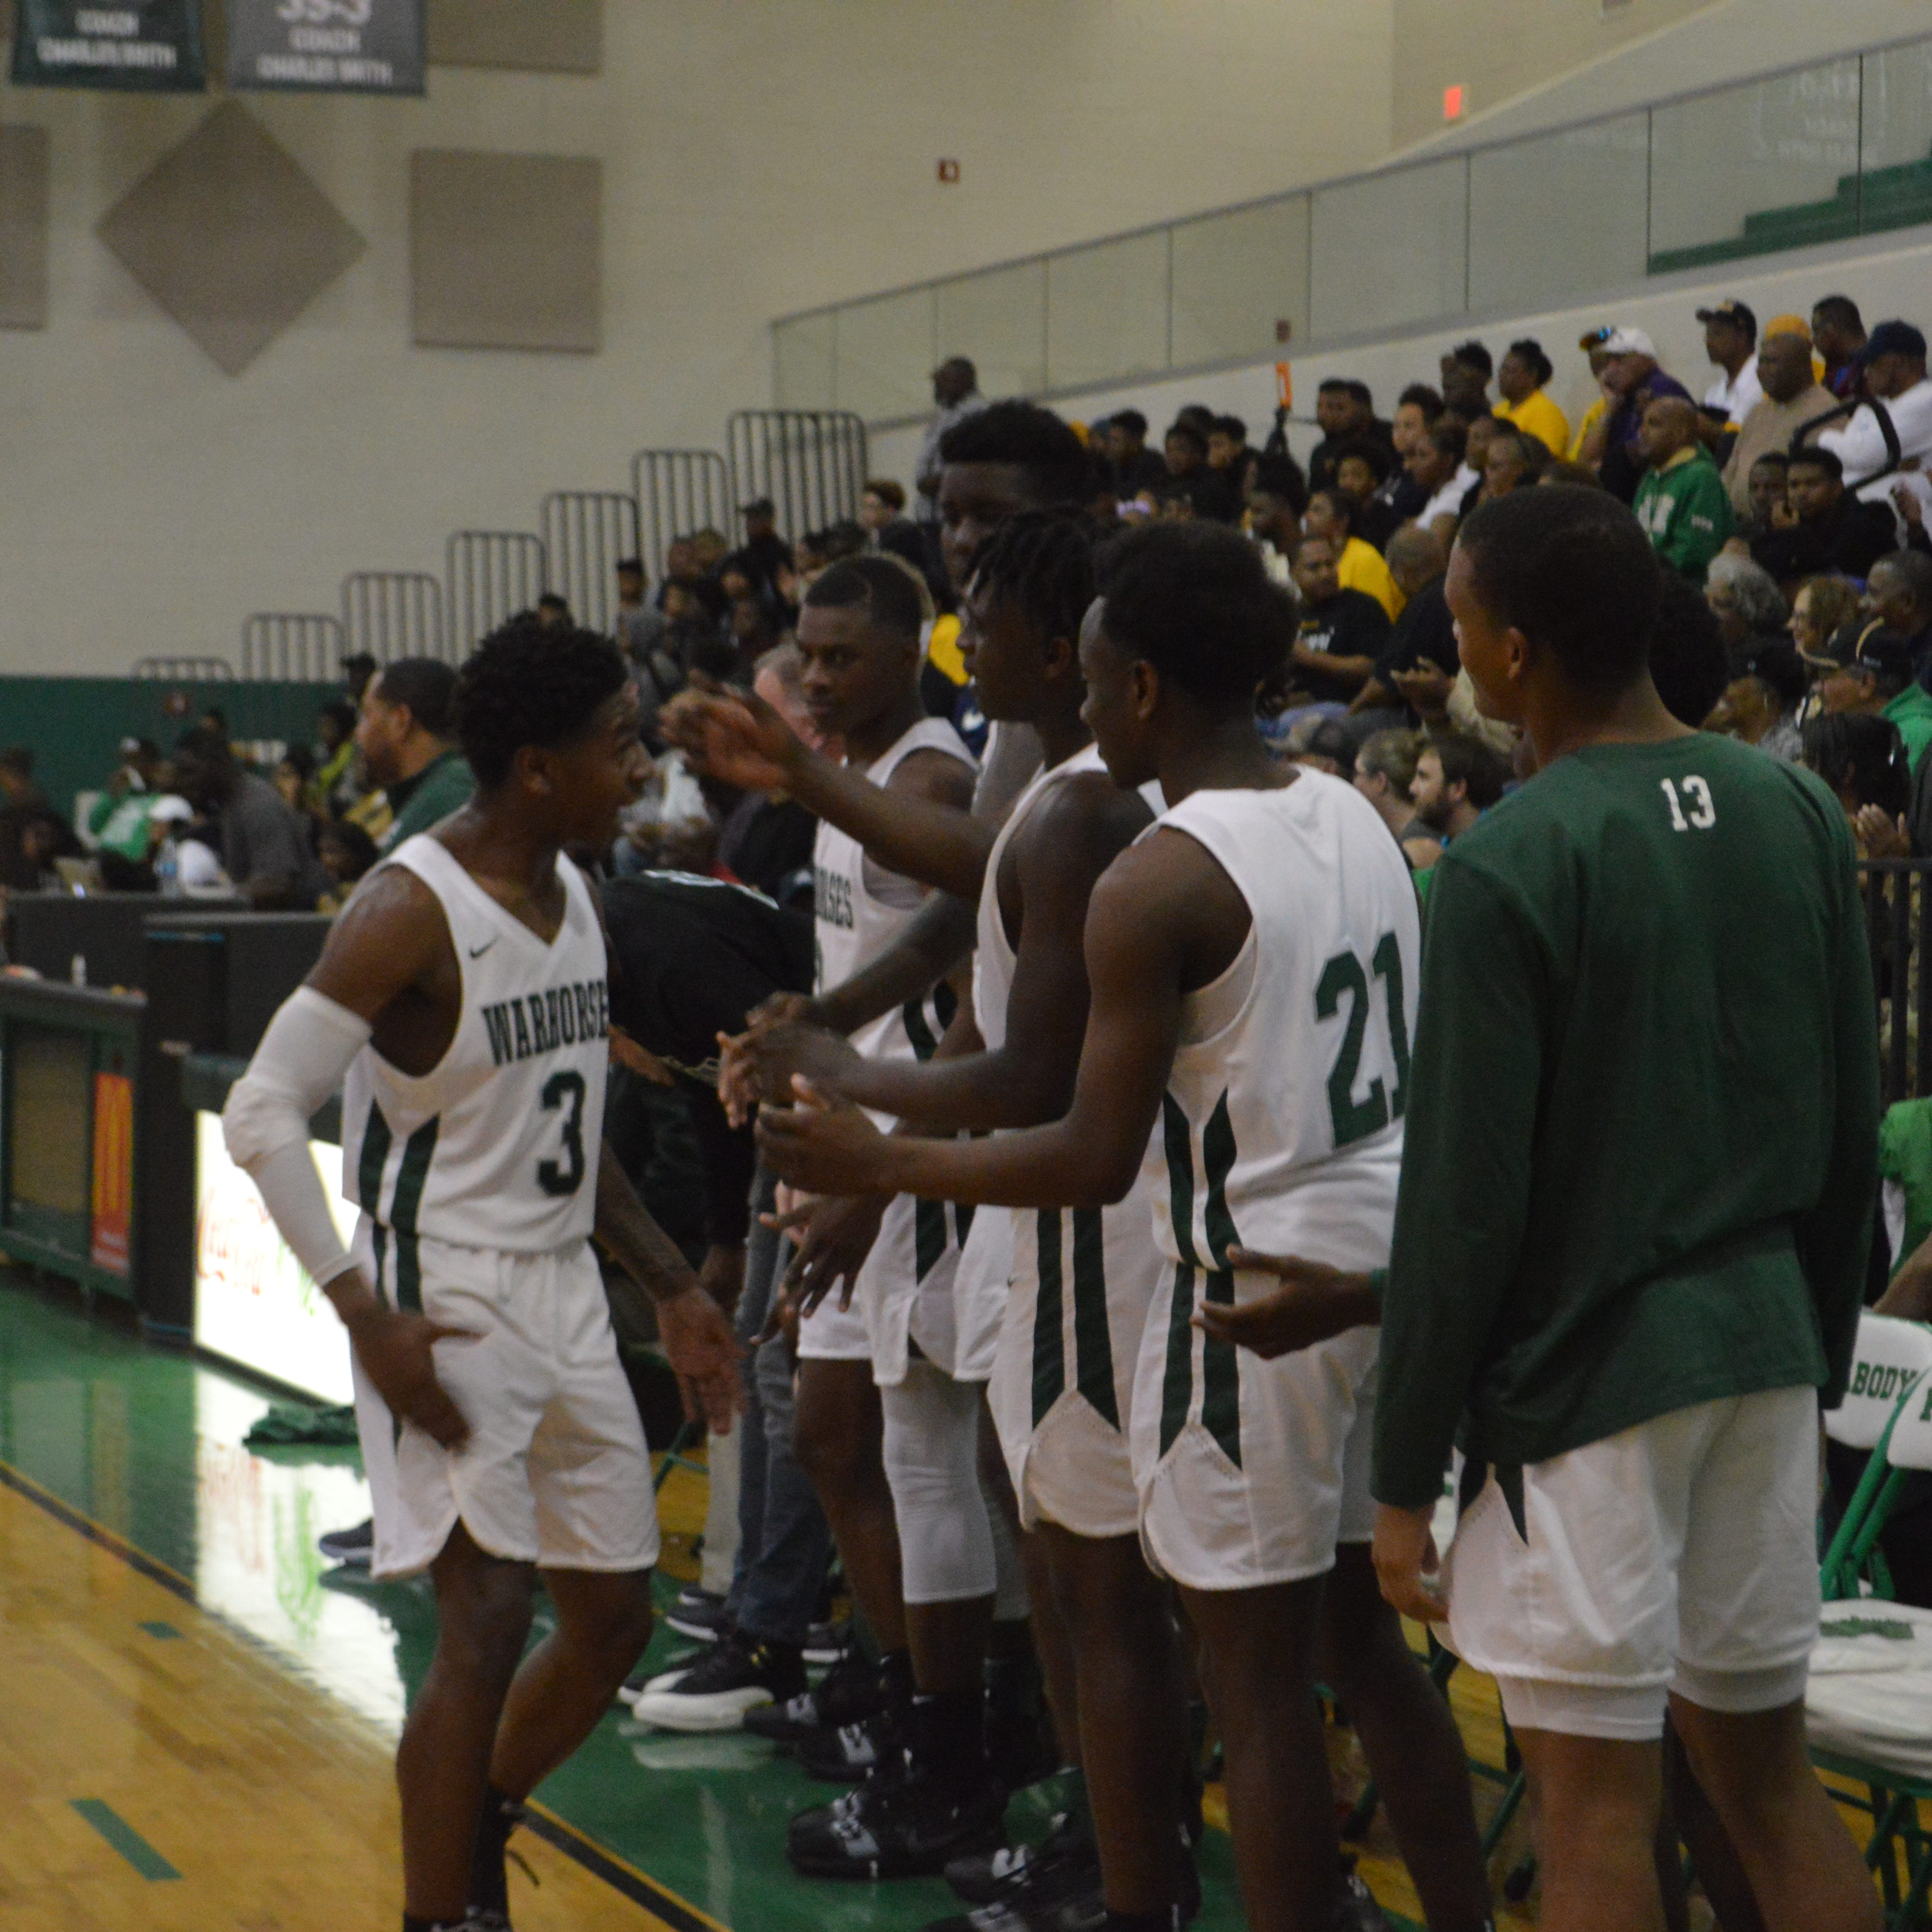 Peabody routs St. James, returns to Lake Charles